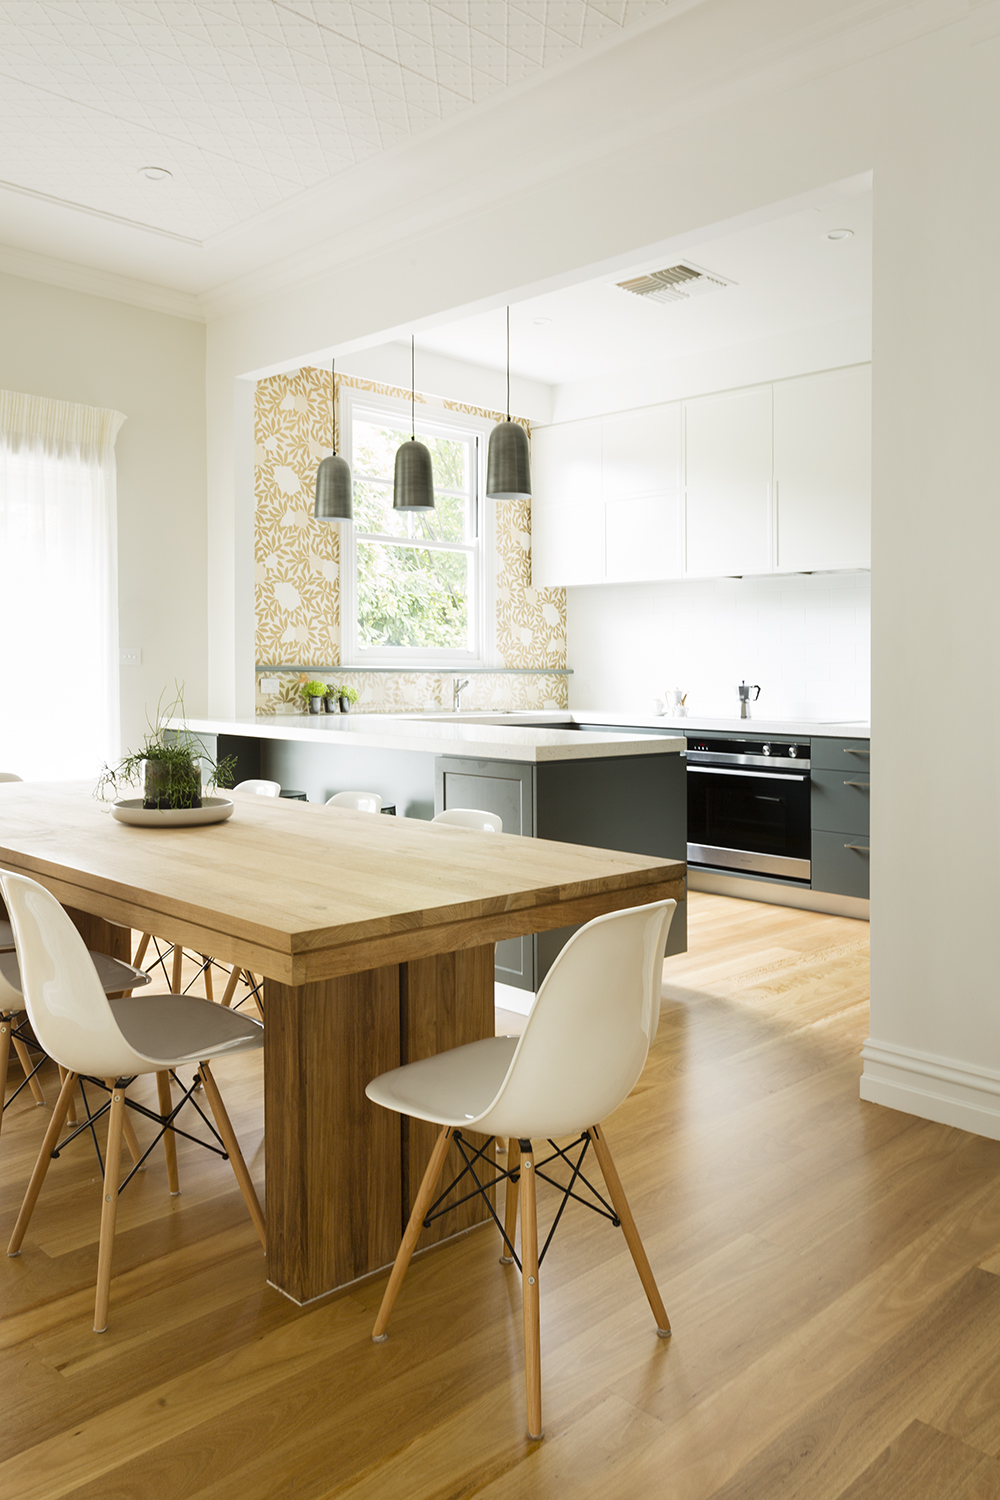 kitchen design kitchen renovation Melbourne